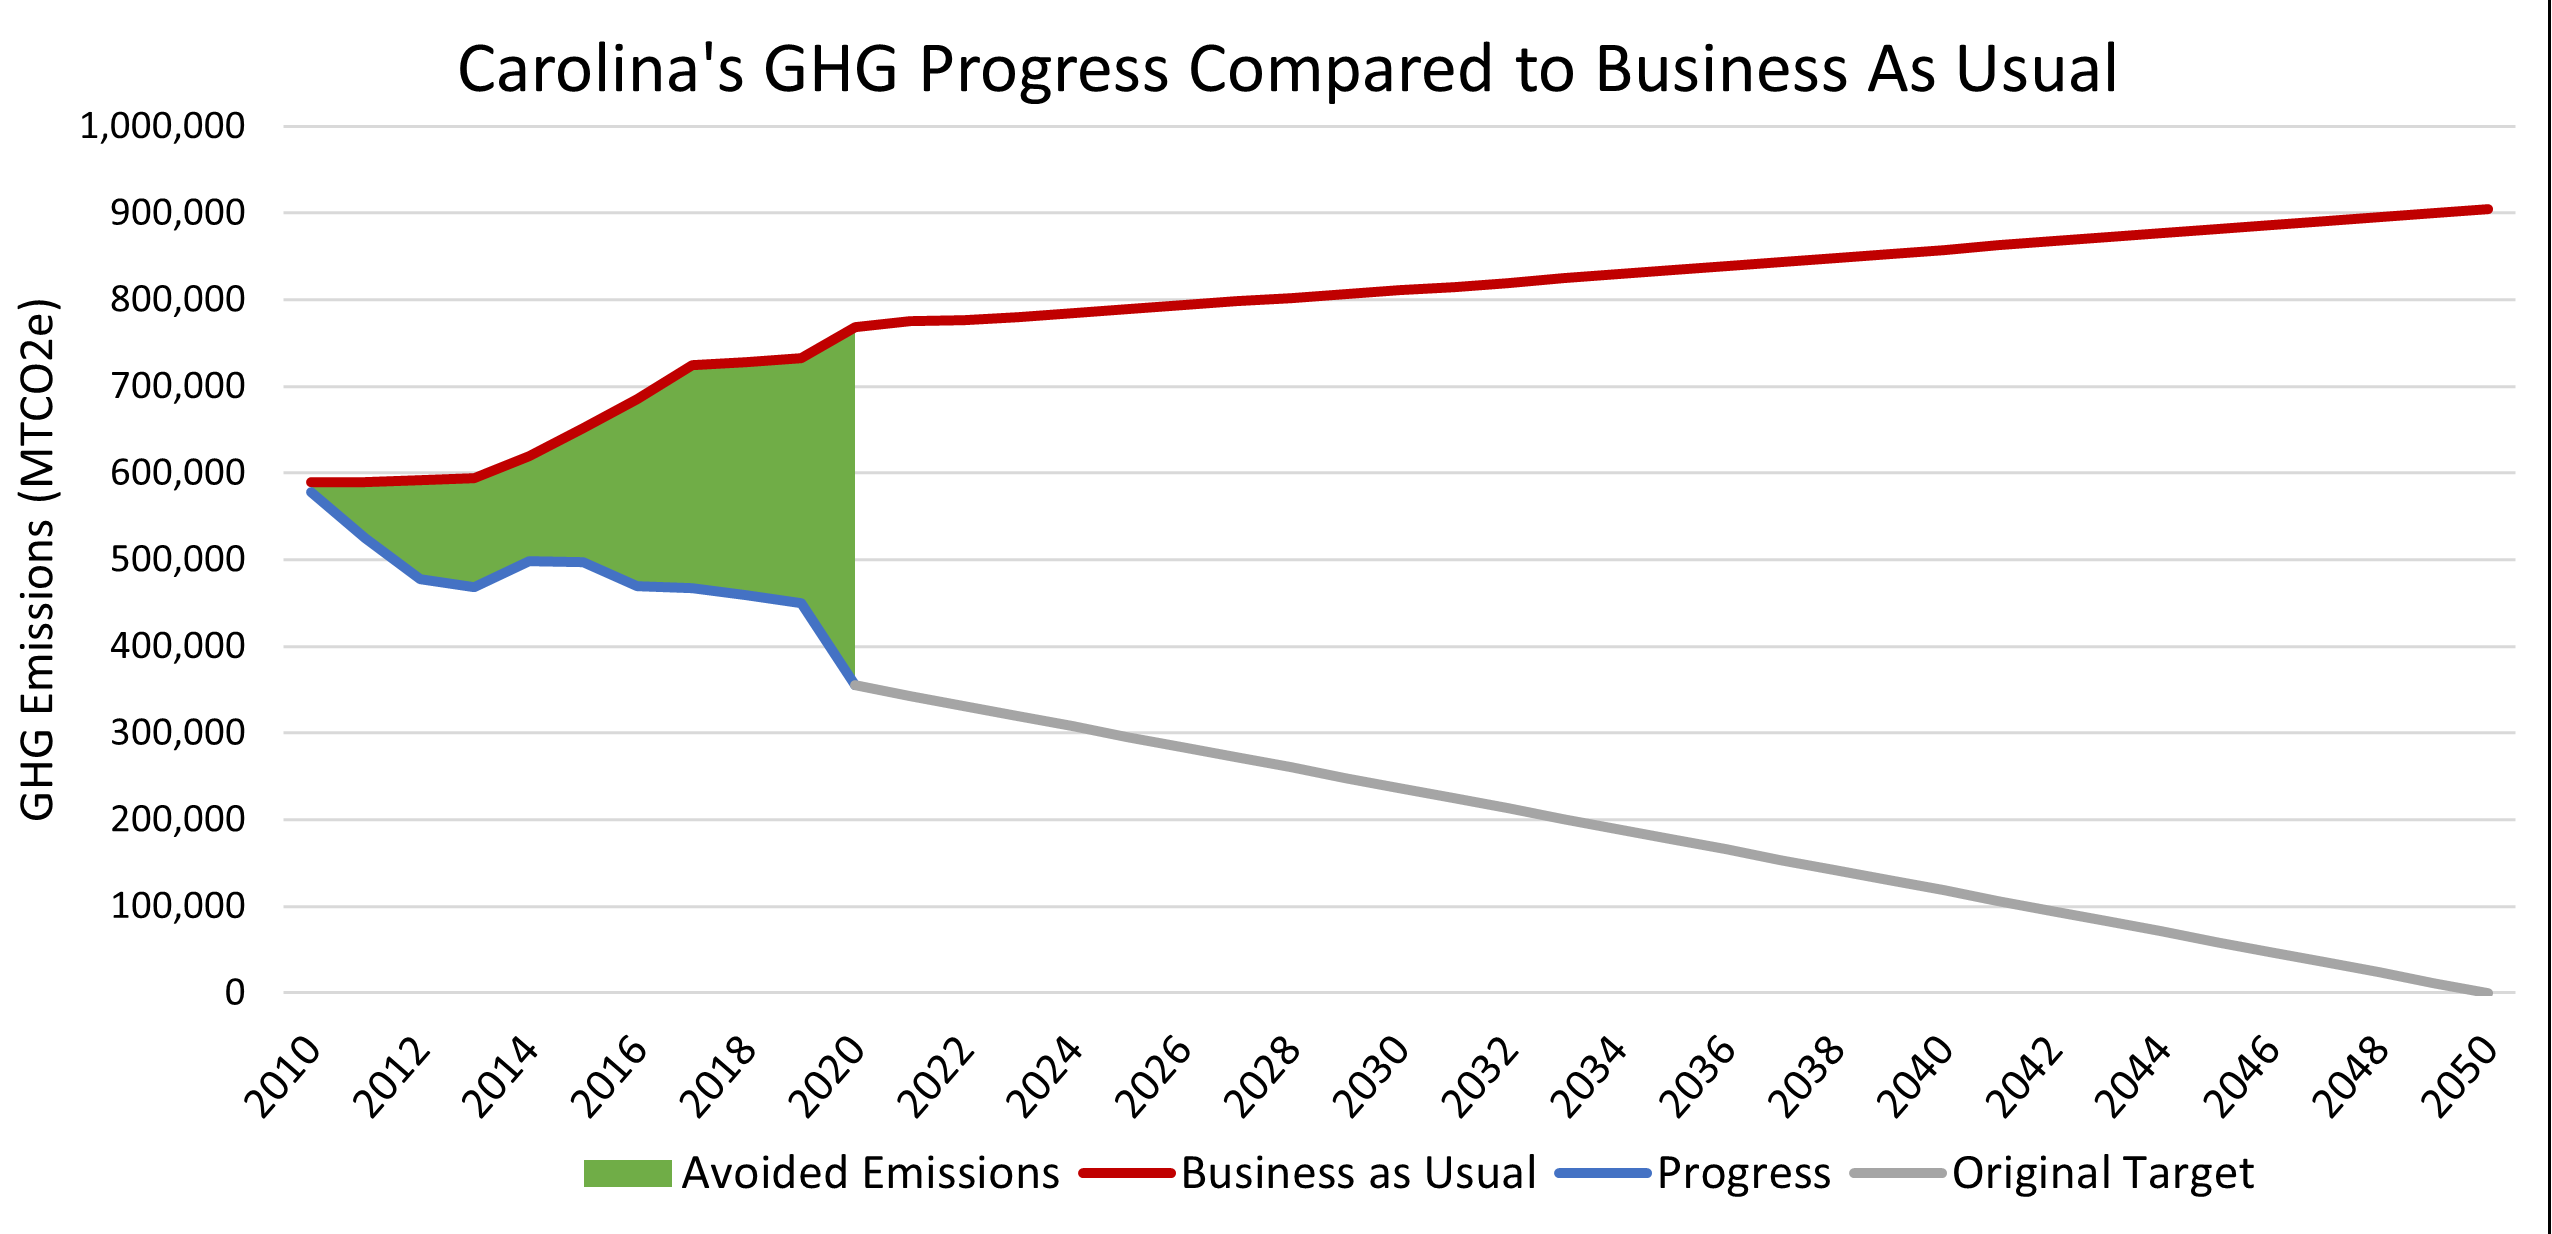 Line graph displaying UNC-Chapel Hill's GHG Emissions as compared to business as usual